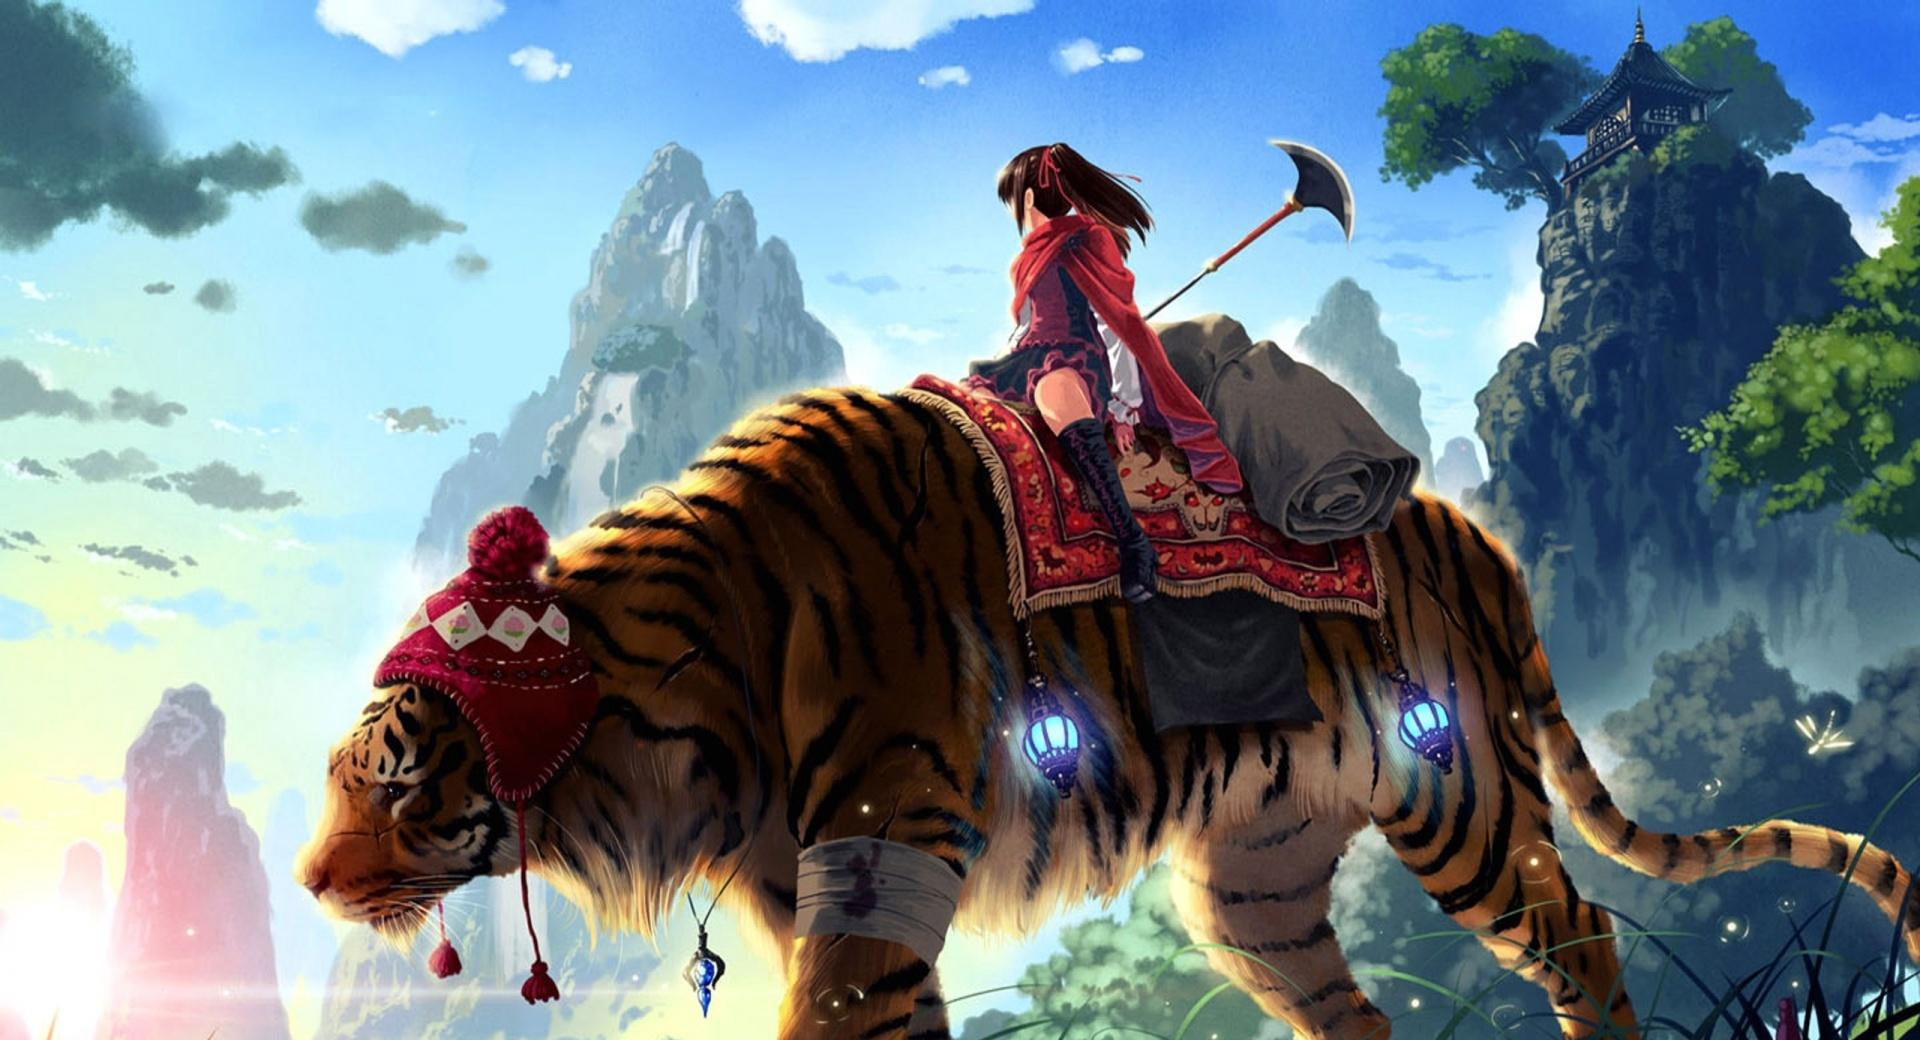 Tiger Ride Painting wallpapers HD quality